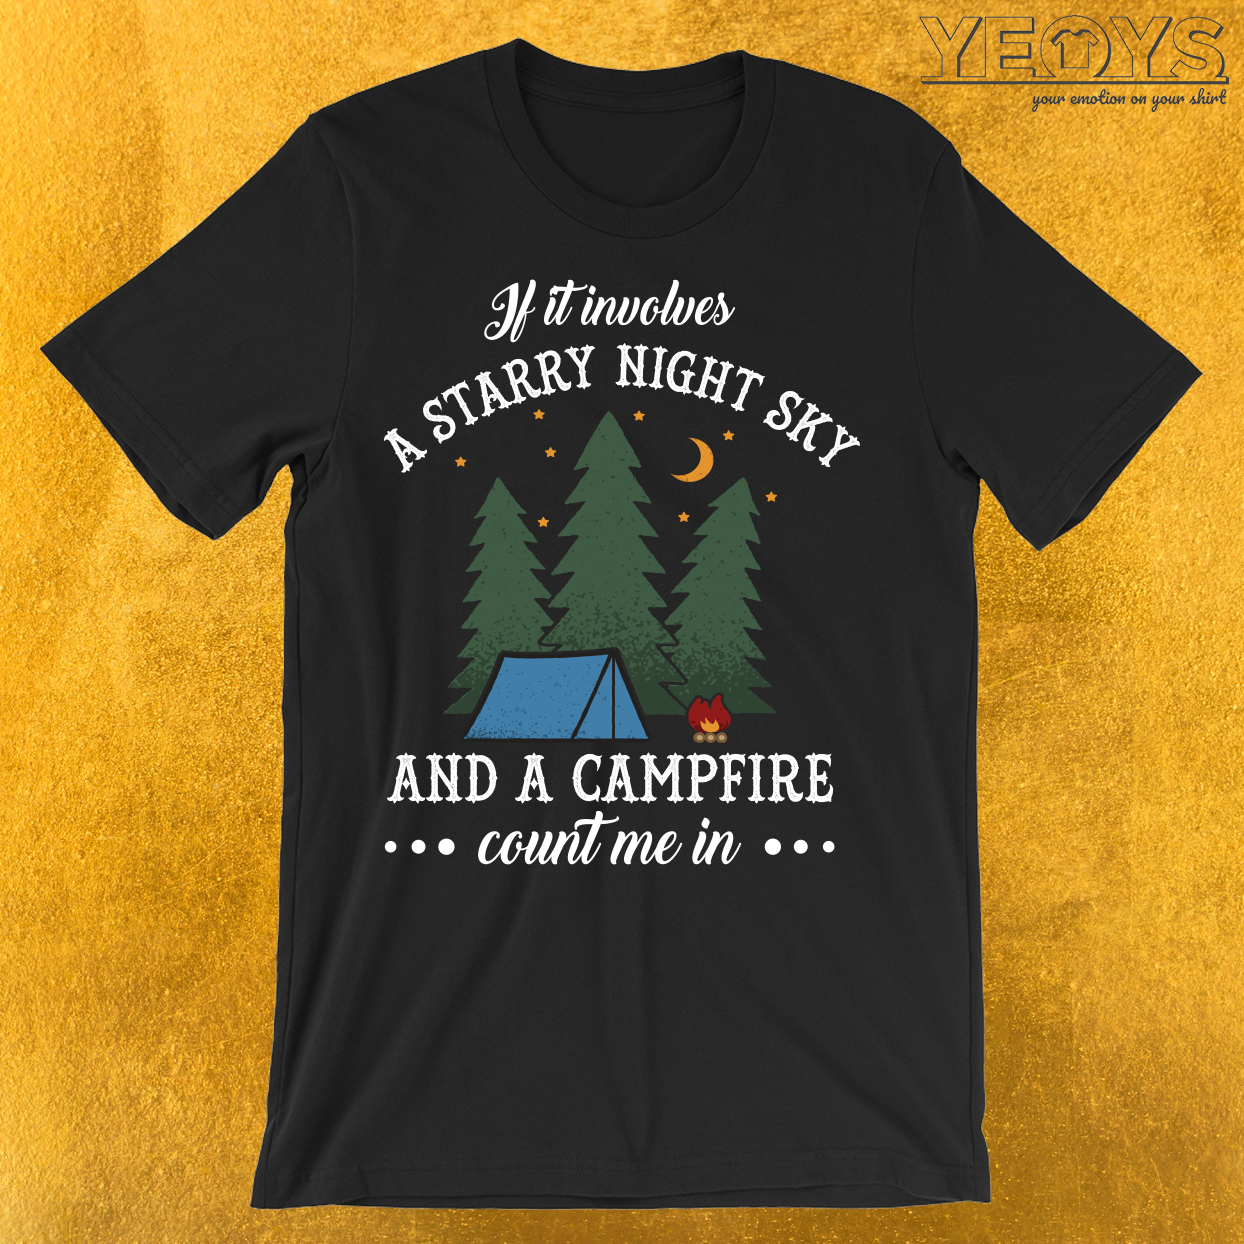 Count Me In Starry Night And A Campfire T-Shirt